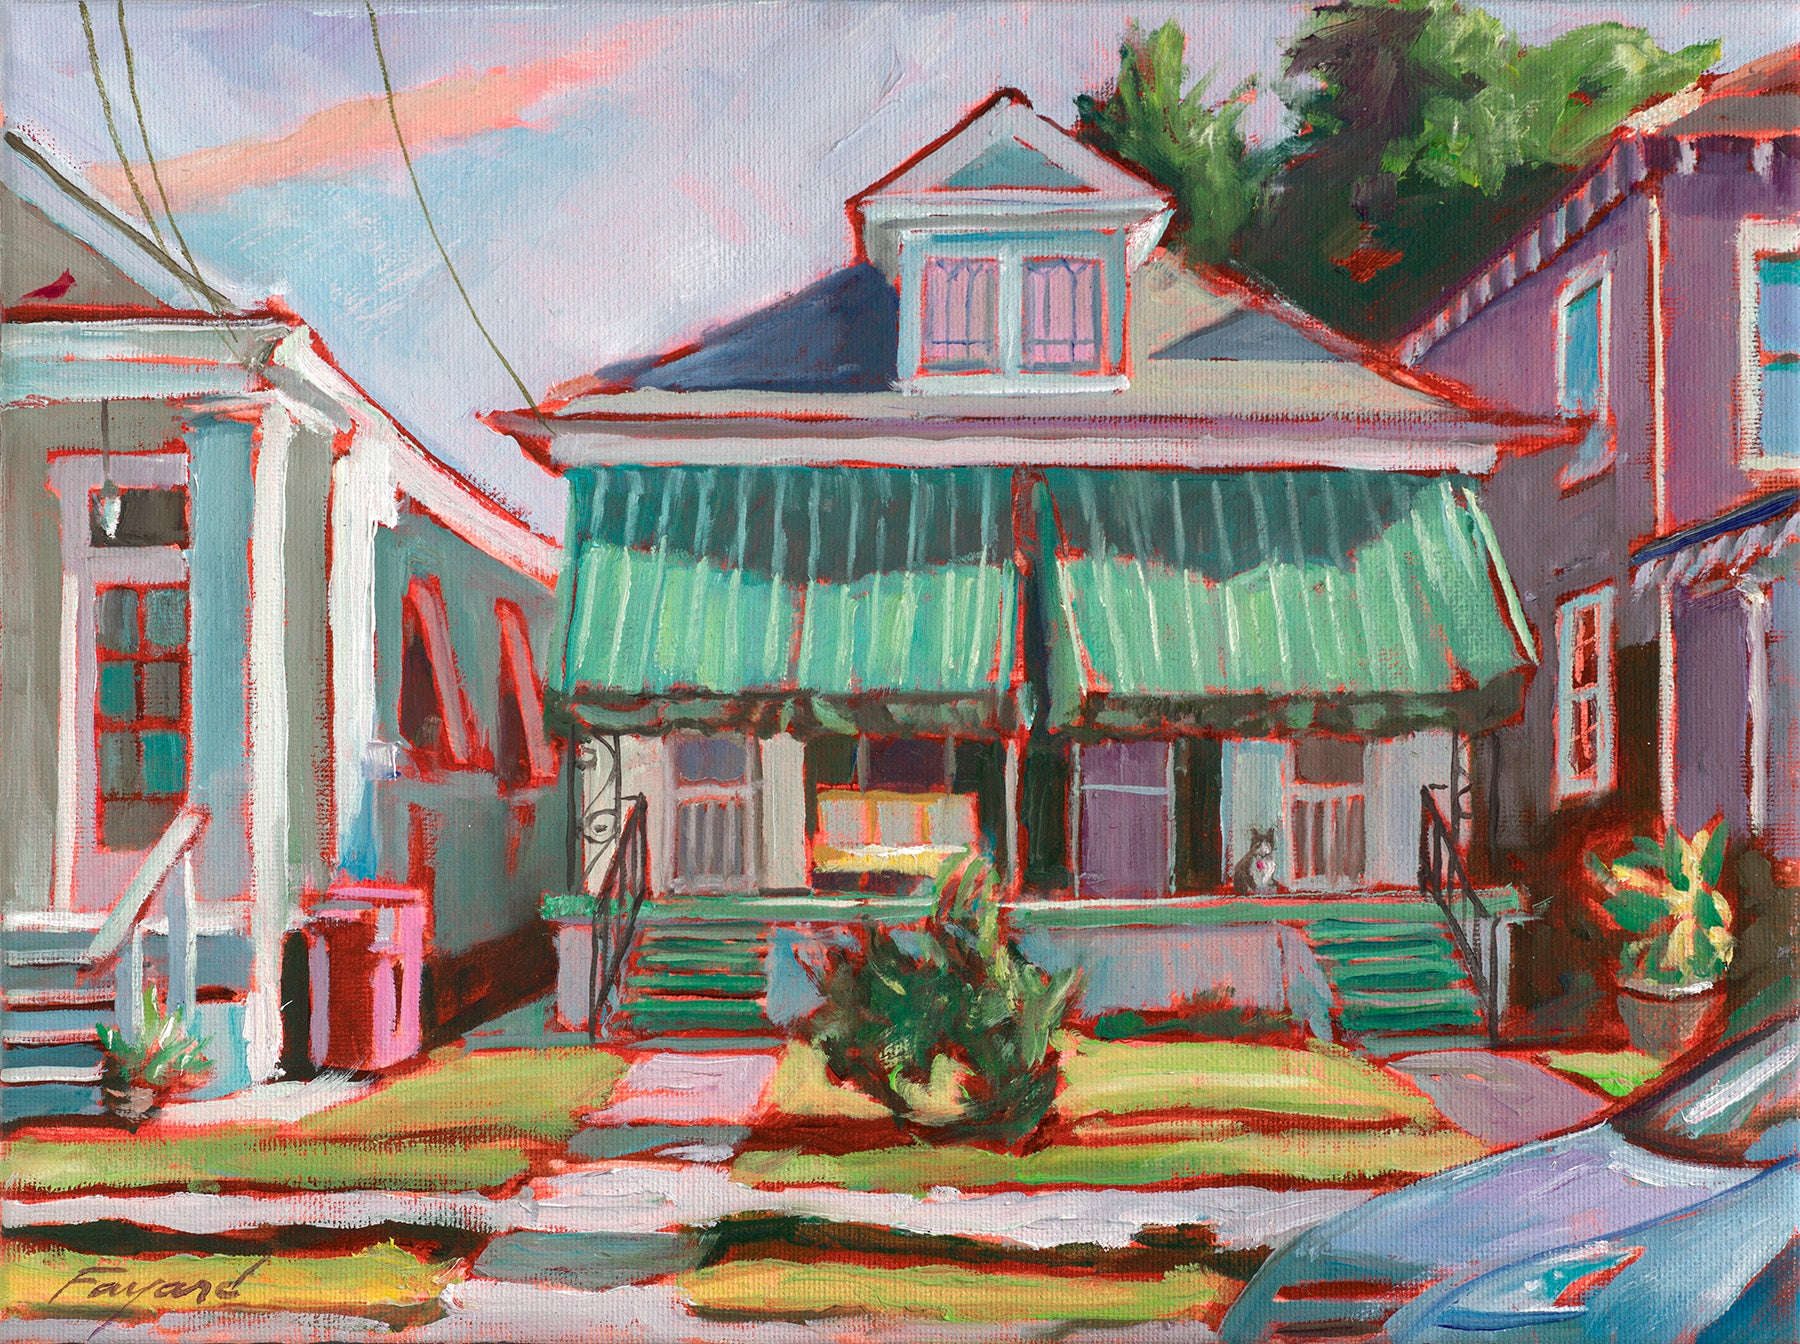 "Doubly Cool in MidCity, New Orleans, oil on canvas, 9"" x 12"" - PaulFayard"